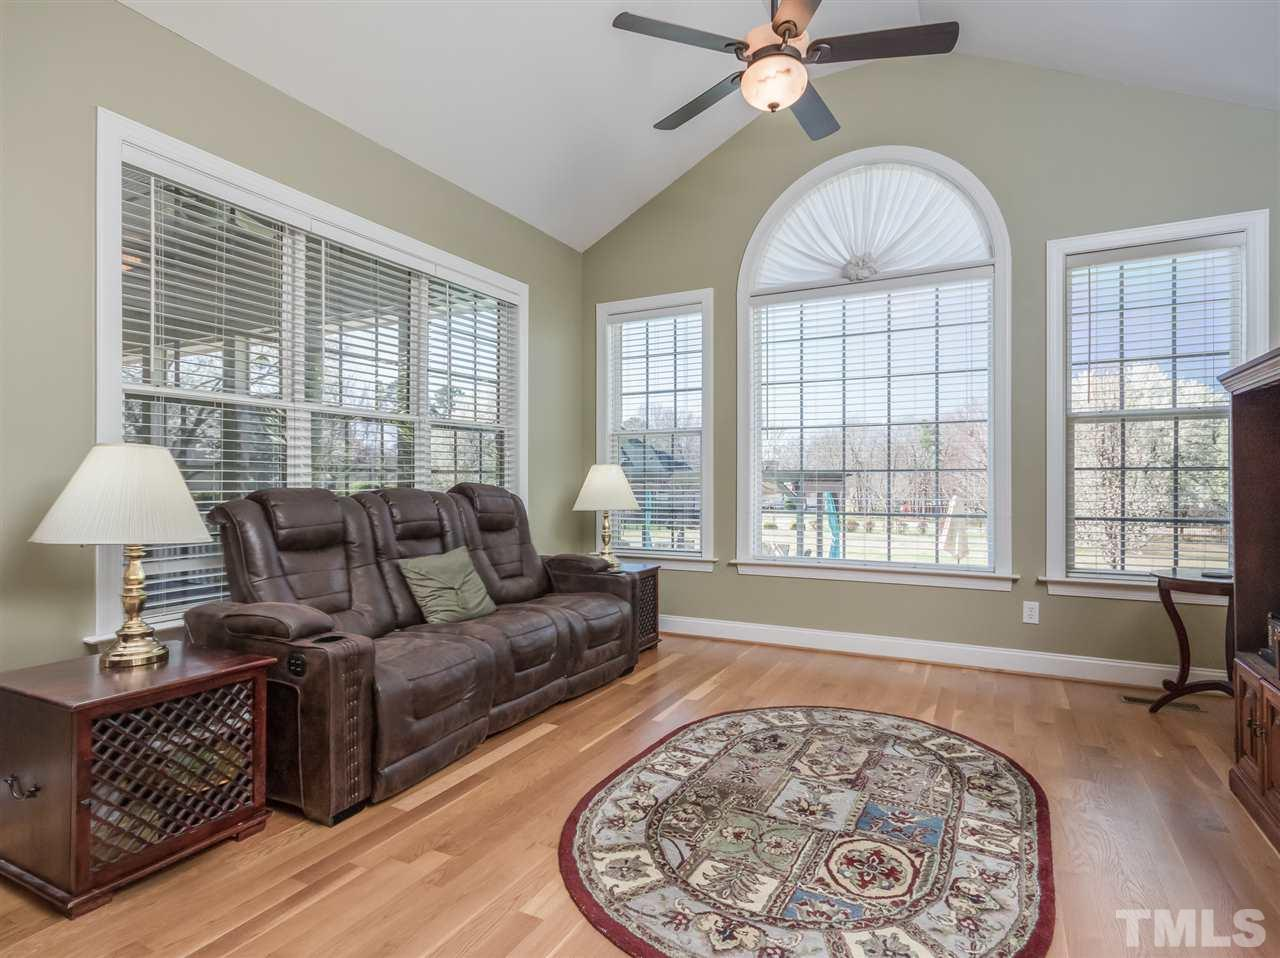 The cathedral ceiling and the view out the palladium window make this room a family favorite!  Watch closley and you may see deer jumping the fence.